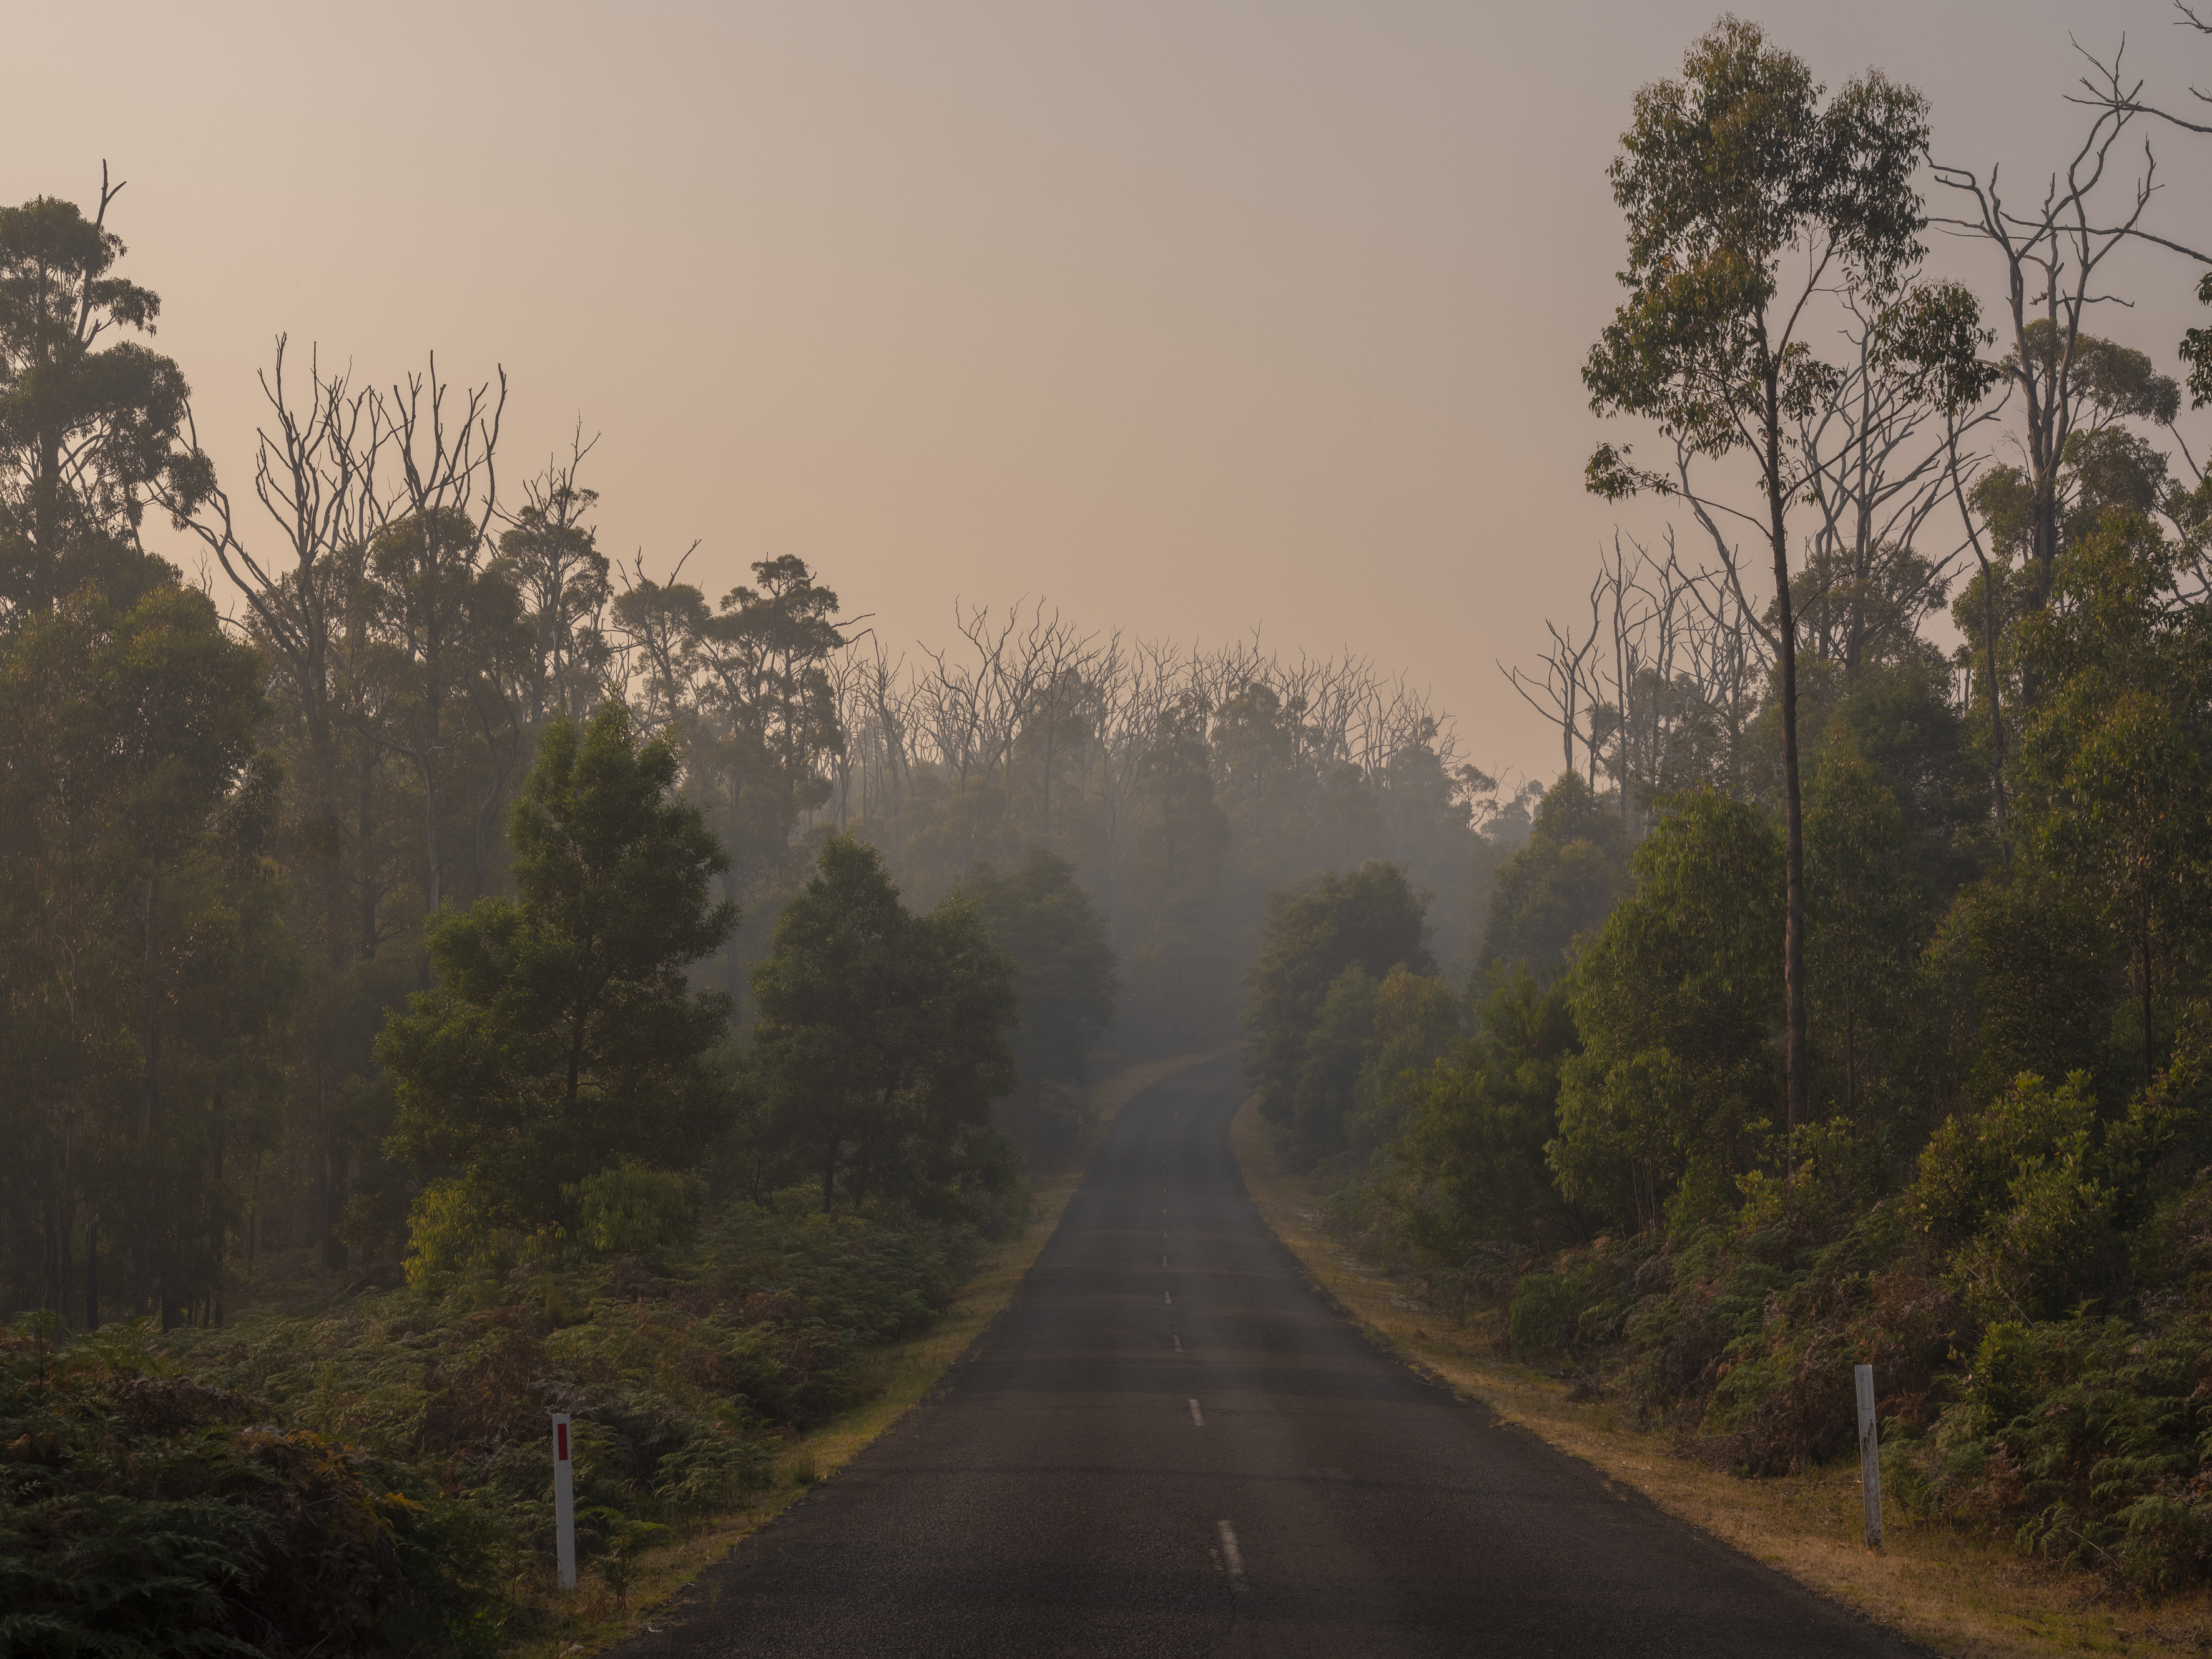 A landscape view in Kinglake National Park shows regenerated forest and dead trees and branches after the Black Saturday bush fires, in Victoria, Australia. MUST CREDIT: photo for The Washington Post by Alana Holmberg/Oculi.